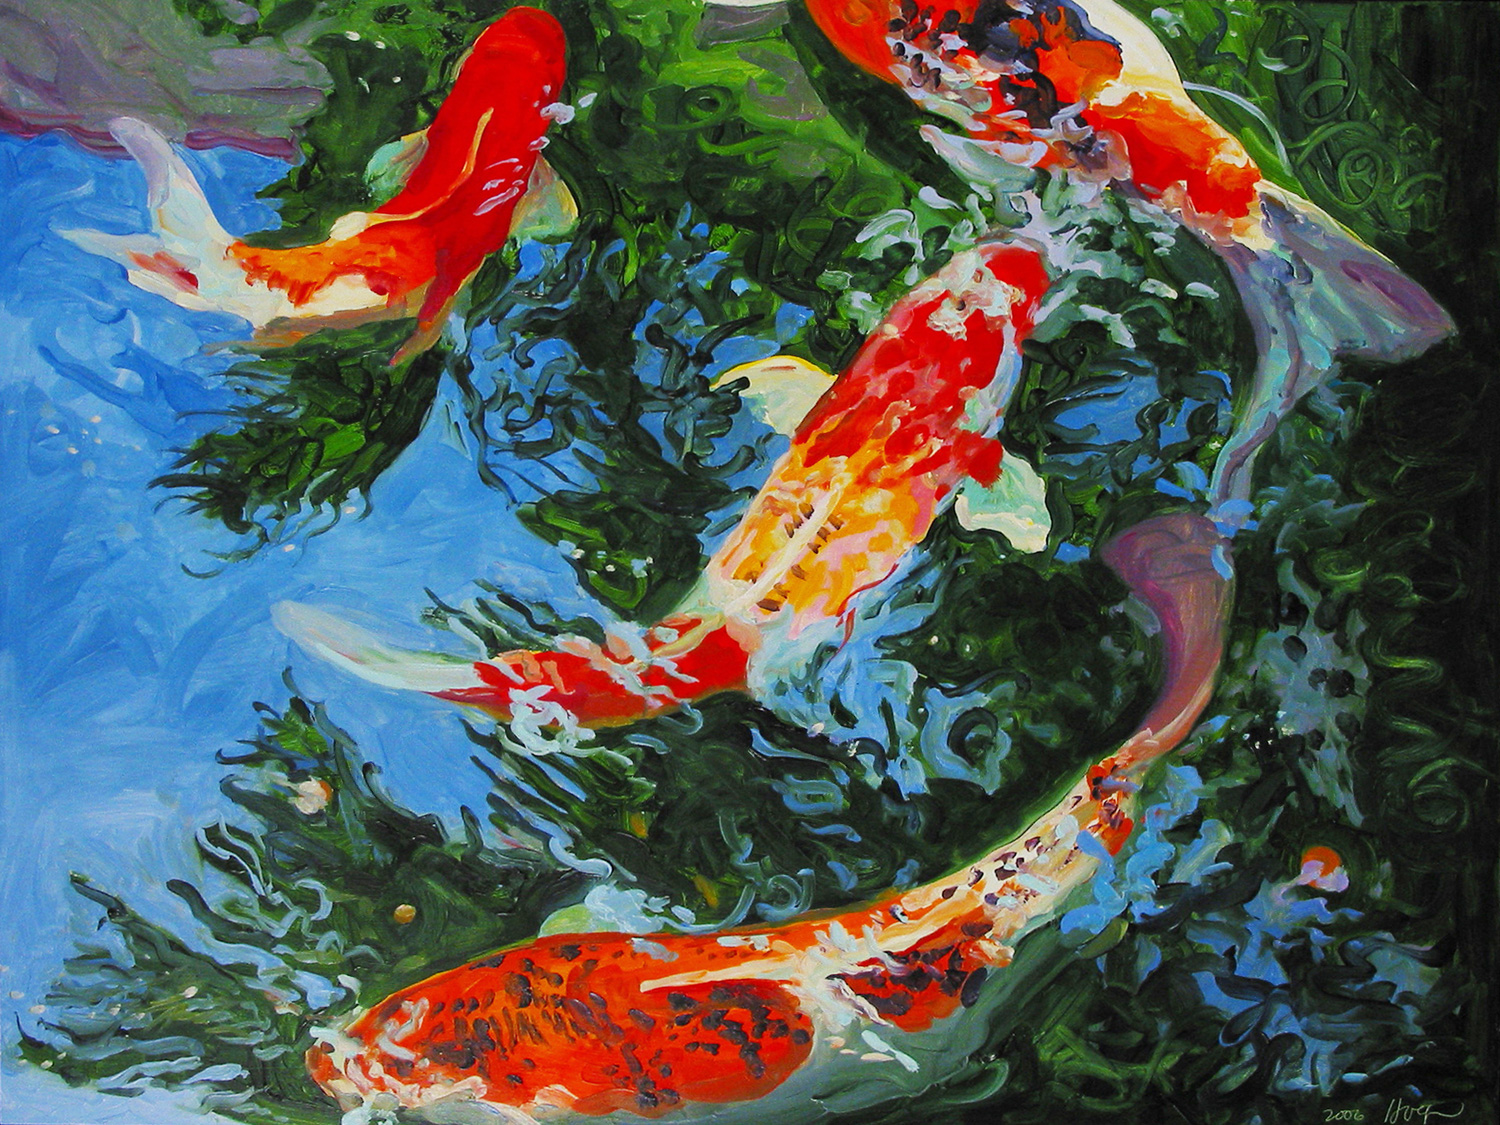 Koi fish paintings koi paintings nature paintings koi for Koi fish in water